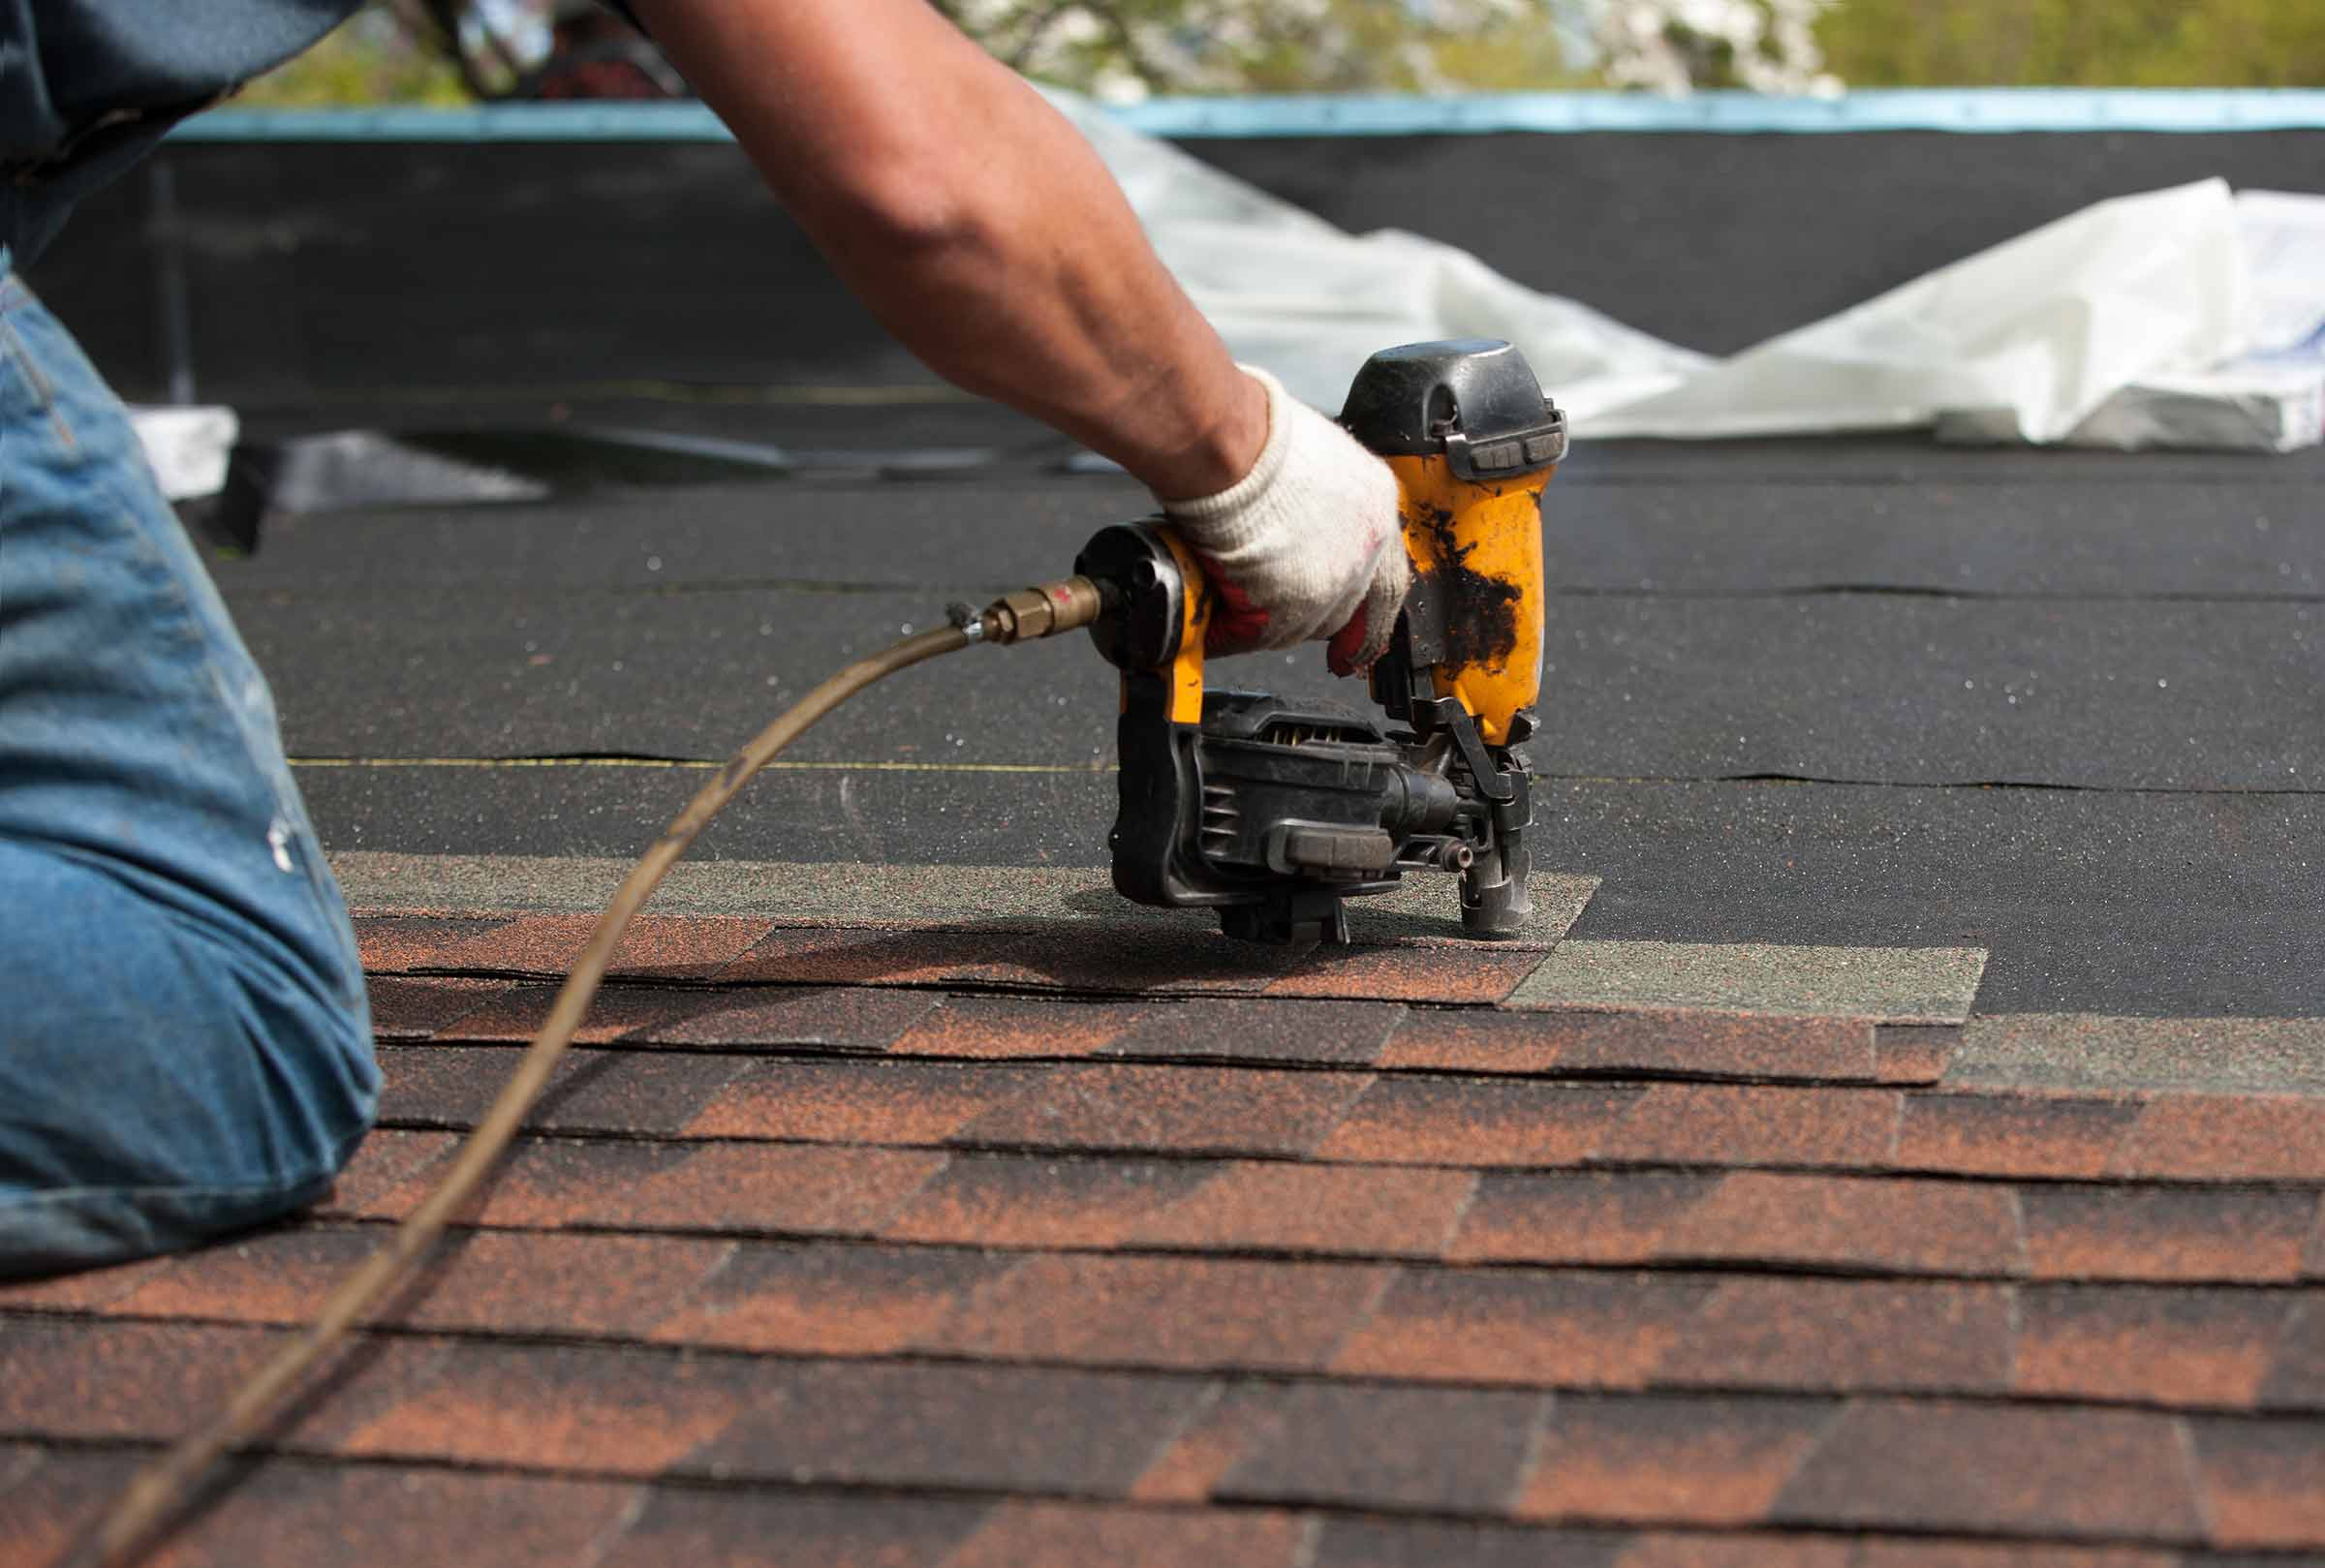 Diverse Roofing Materials And Points to Consider For Choosing The Perfect Options